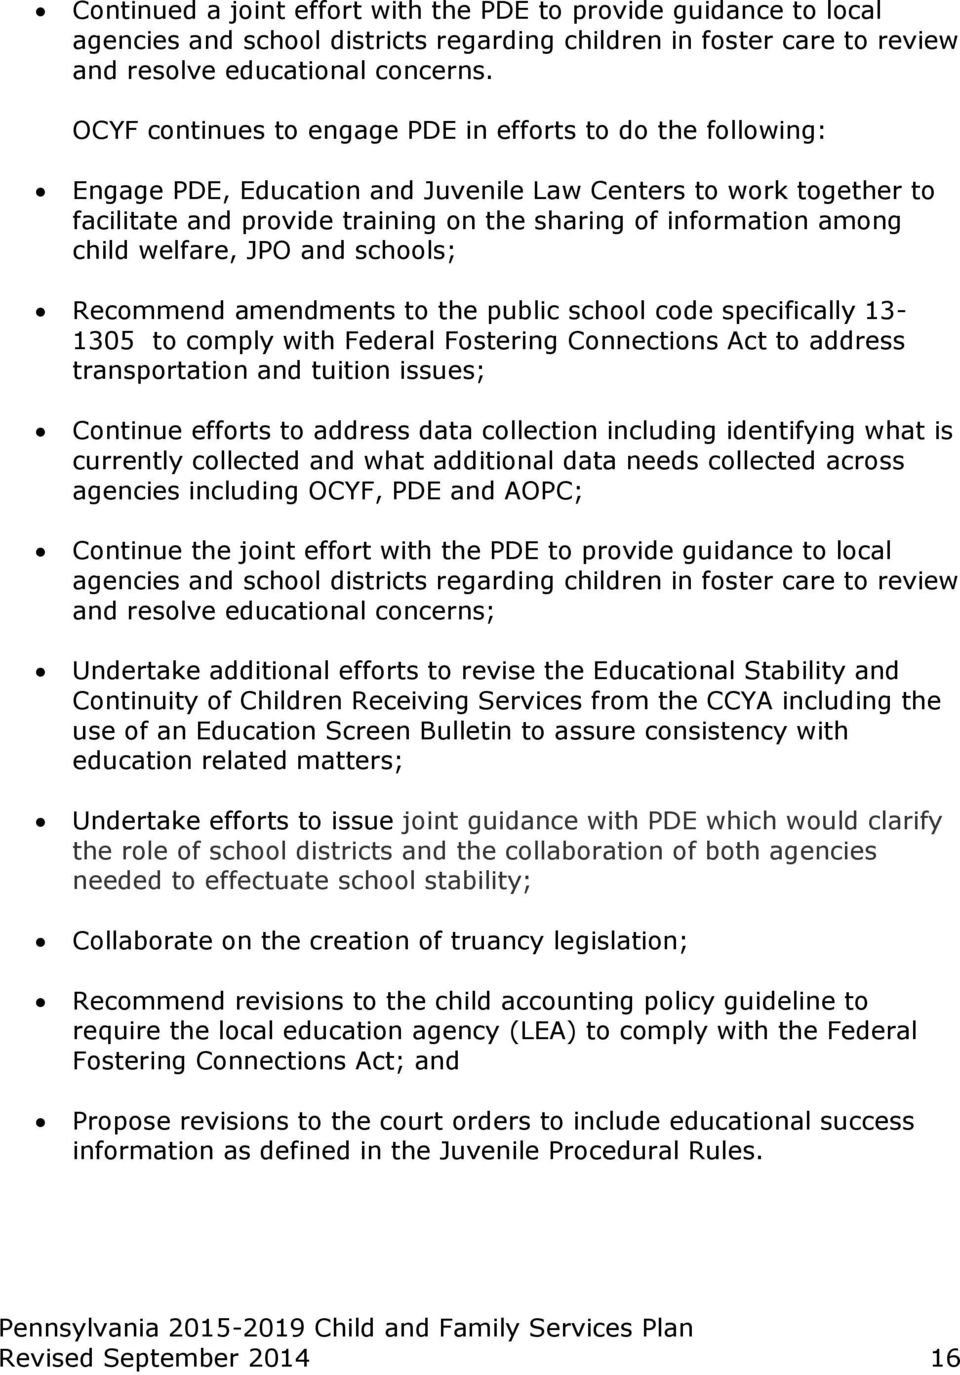 child welfare, JPO and schools; Recommend amendments to the public school code specifically 13-1305 to comply with Federal Fostering Connections Act to address transportation and tuition issues;